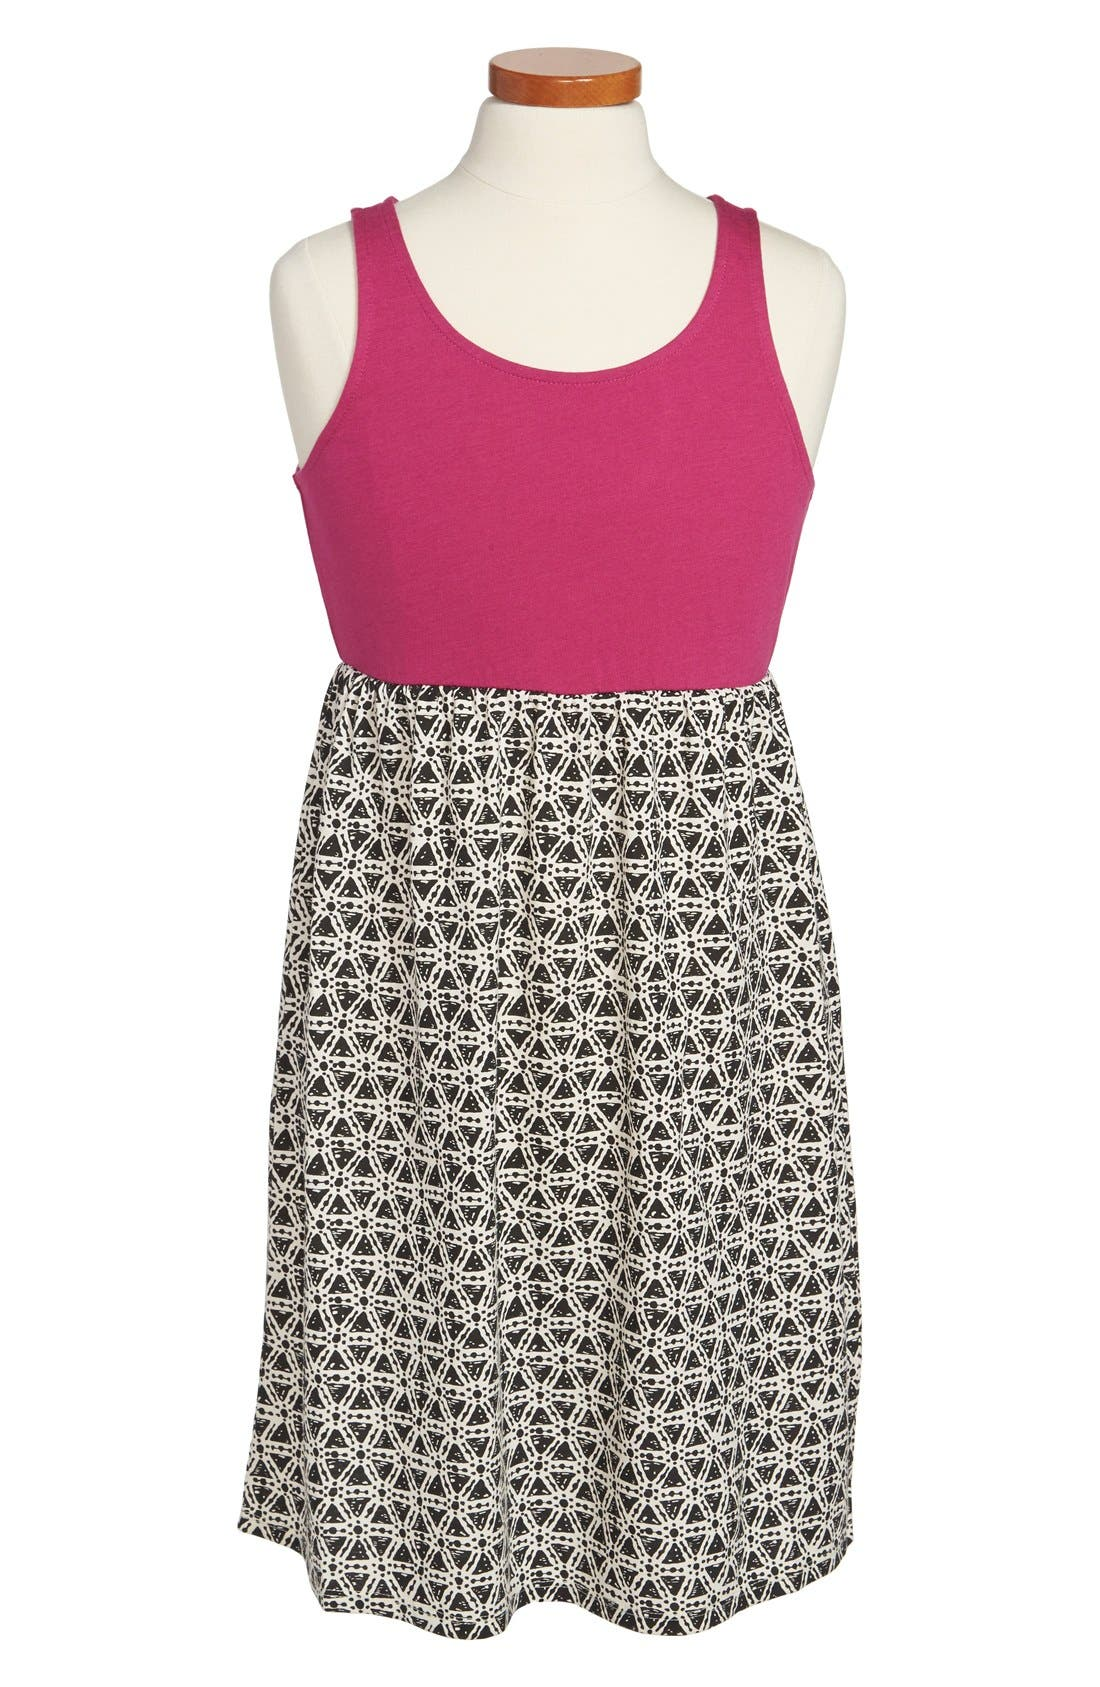 Alternate Image 1 Selected - Roxy 'Beaming Shadow' Sleeveless Dress (Big Girls)